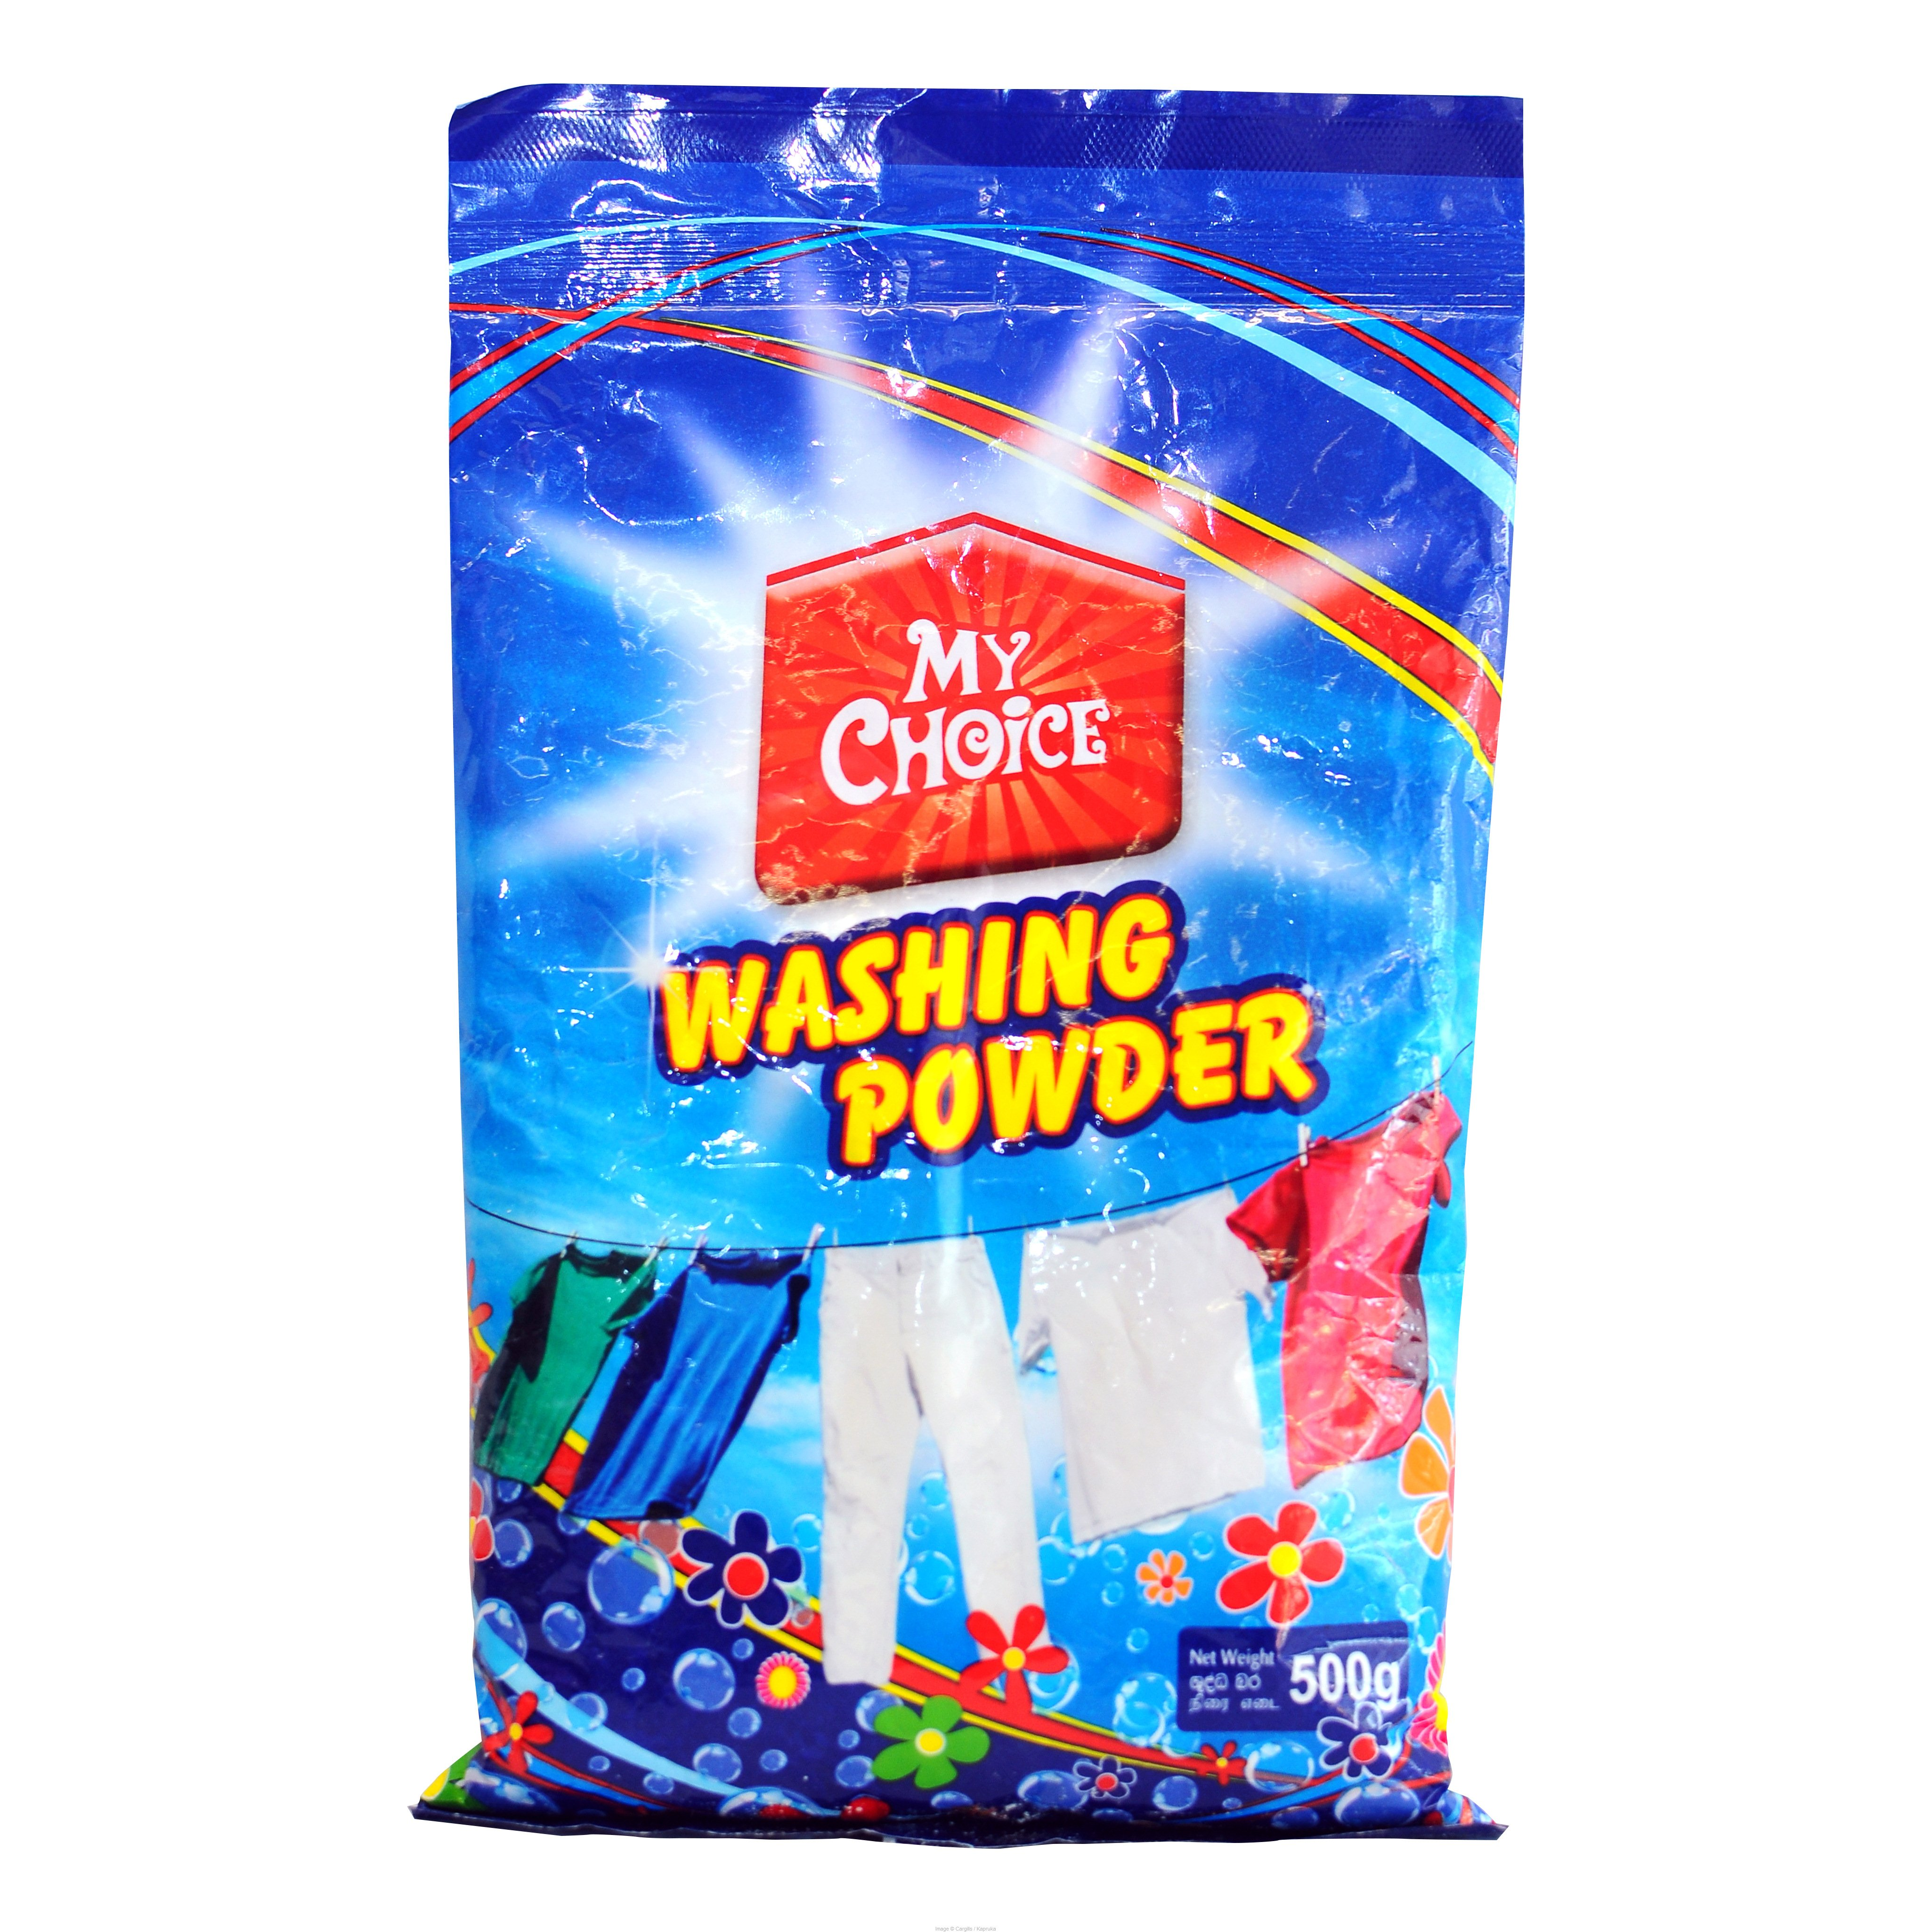 MY CHOICE WASHING POWDER - 500GR at Kapruka Online for Foodcity